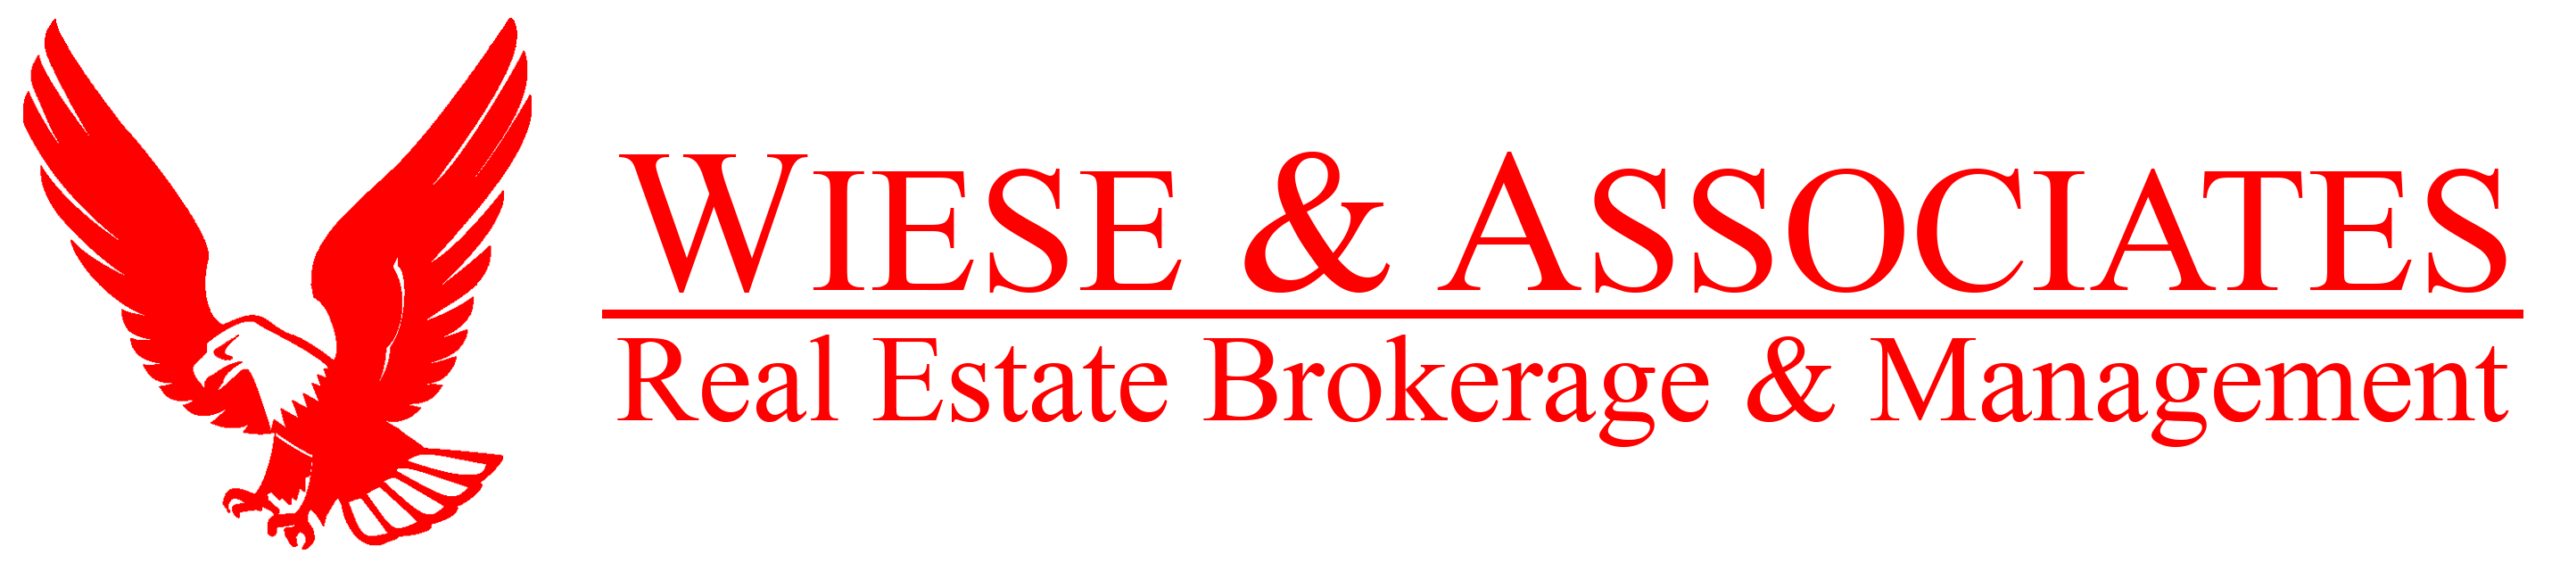 Wiese & Associates Real Estate Brokerage & Management